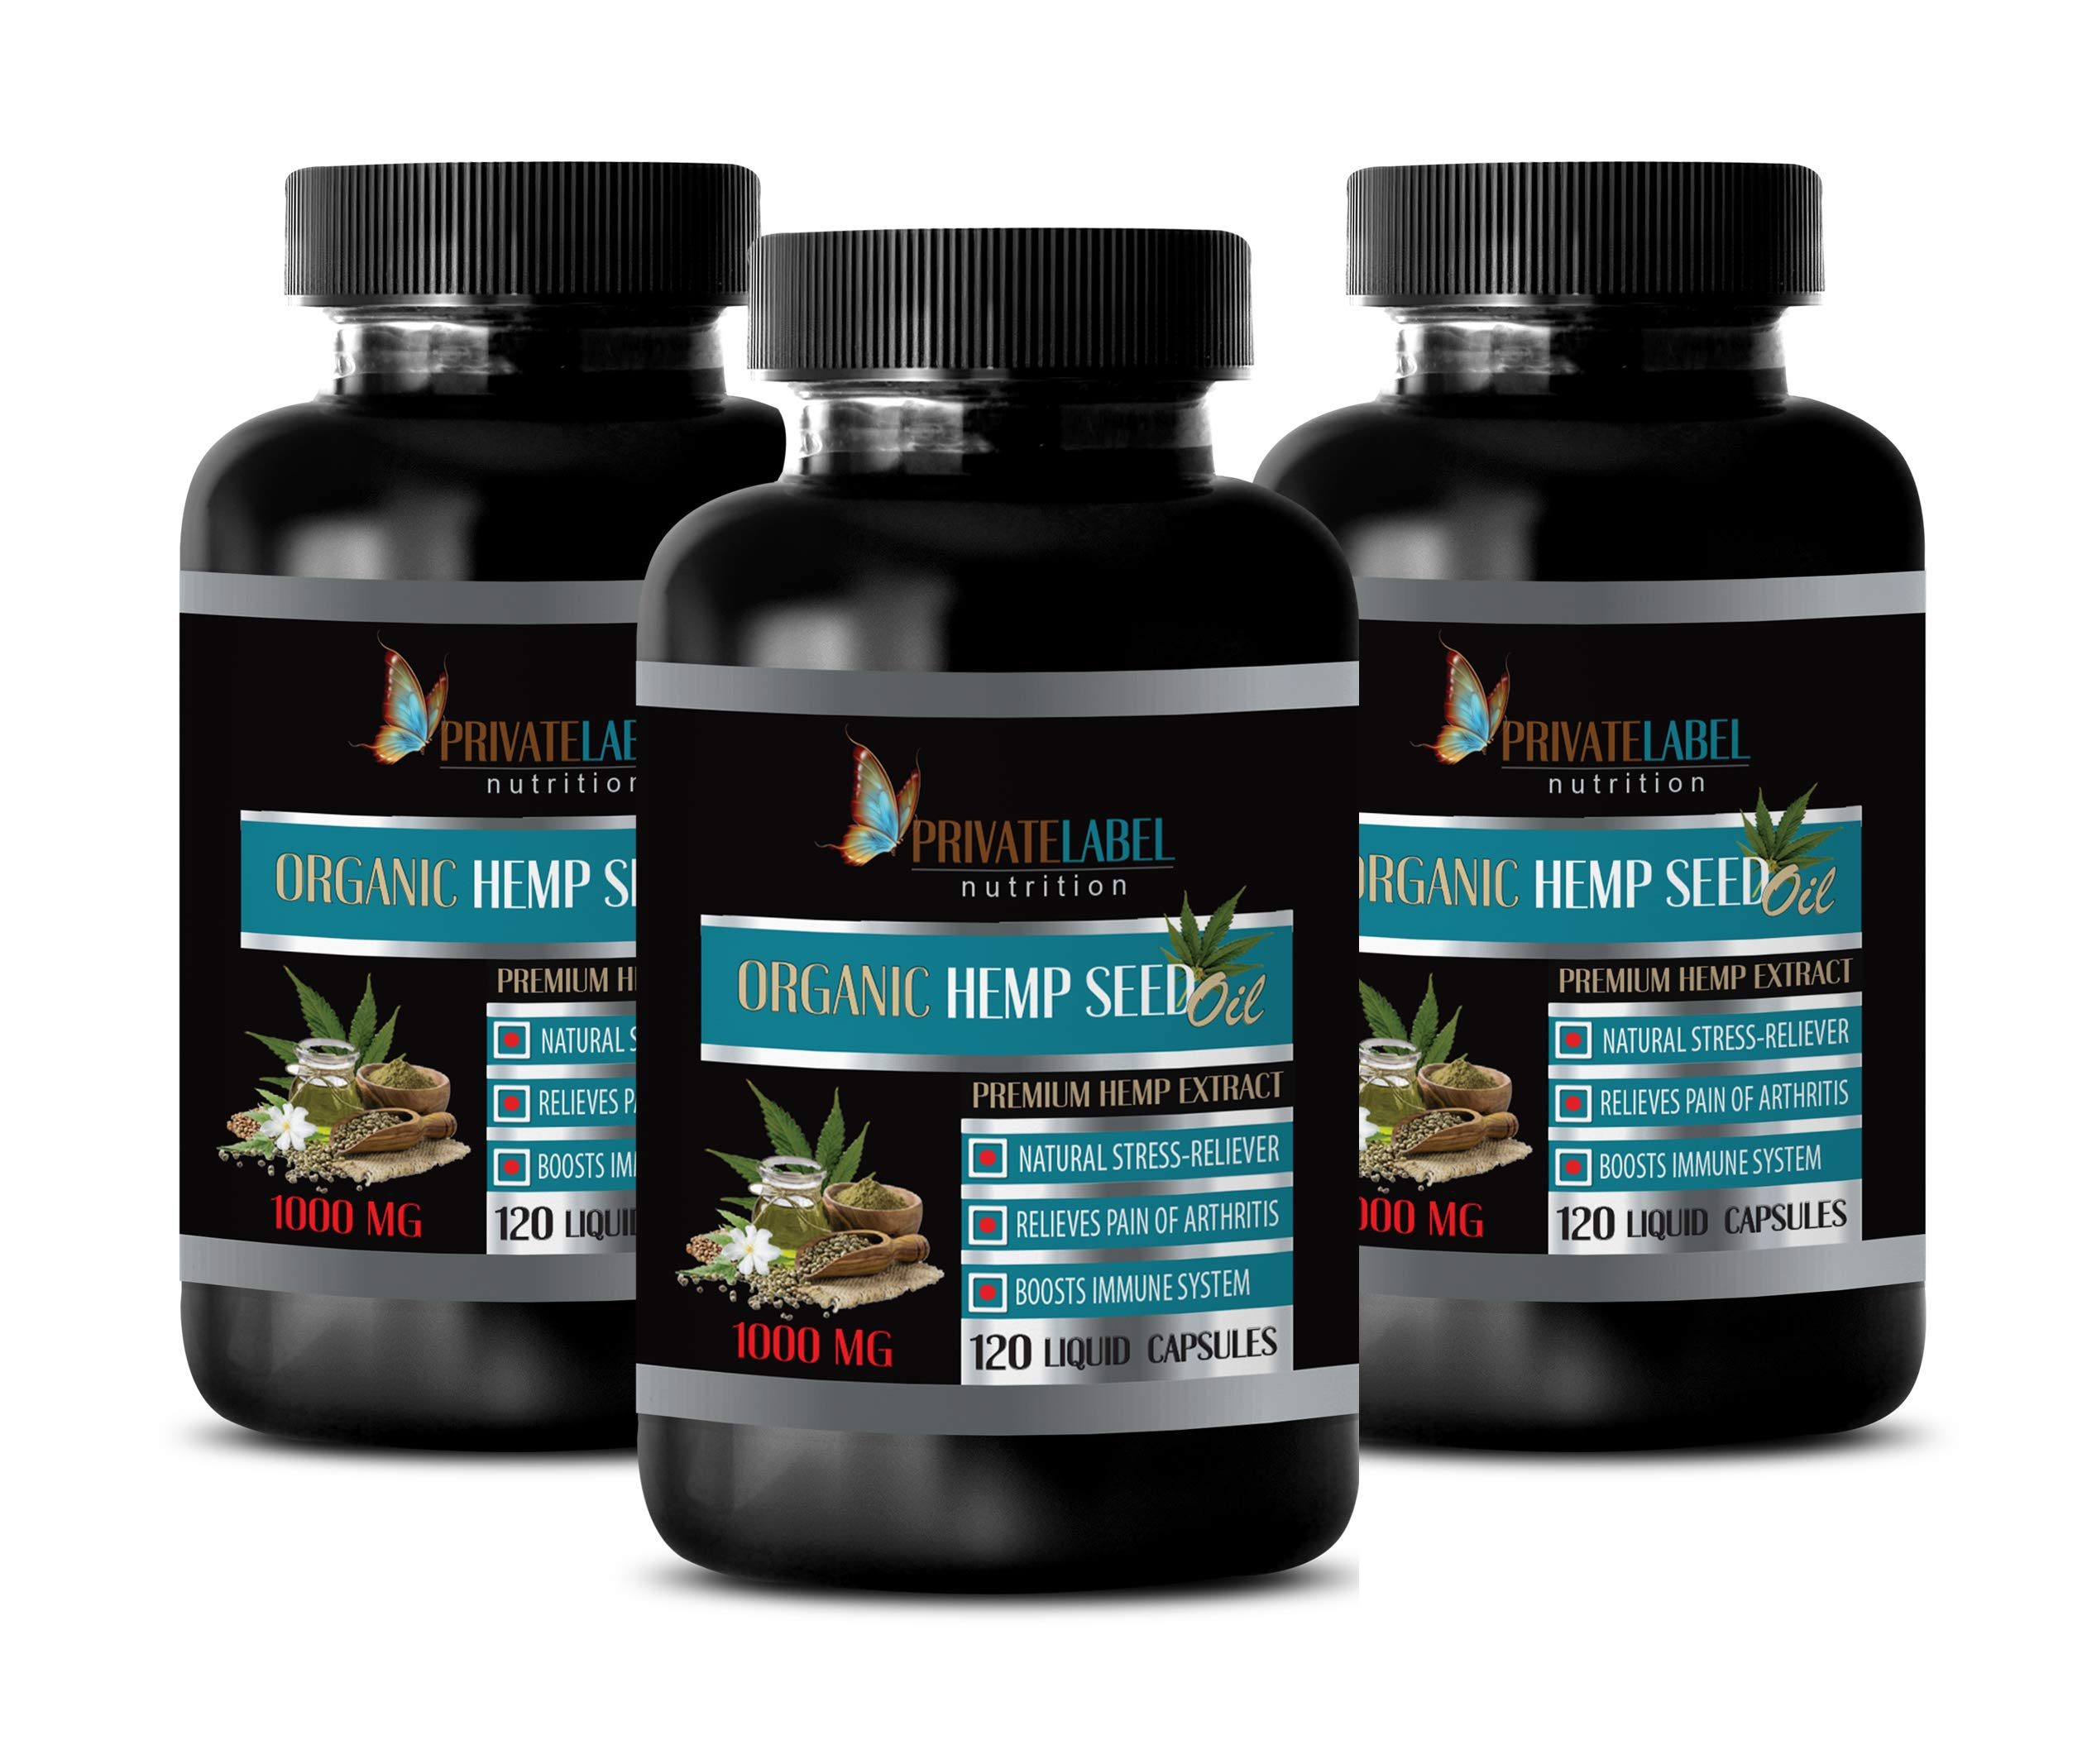 Immune System Booster Organic - Organic Hemp Seed Oil 1000MG - Hemp Seed Oil for Anxiety and Sleep - 3 Bottles 360 Liquid Capsules